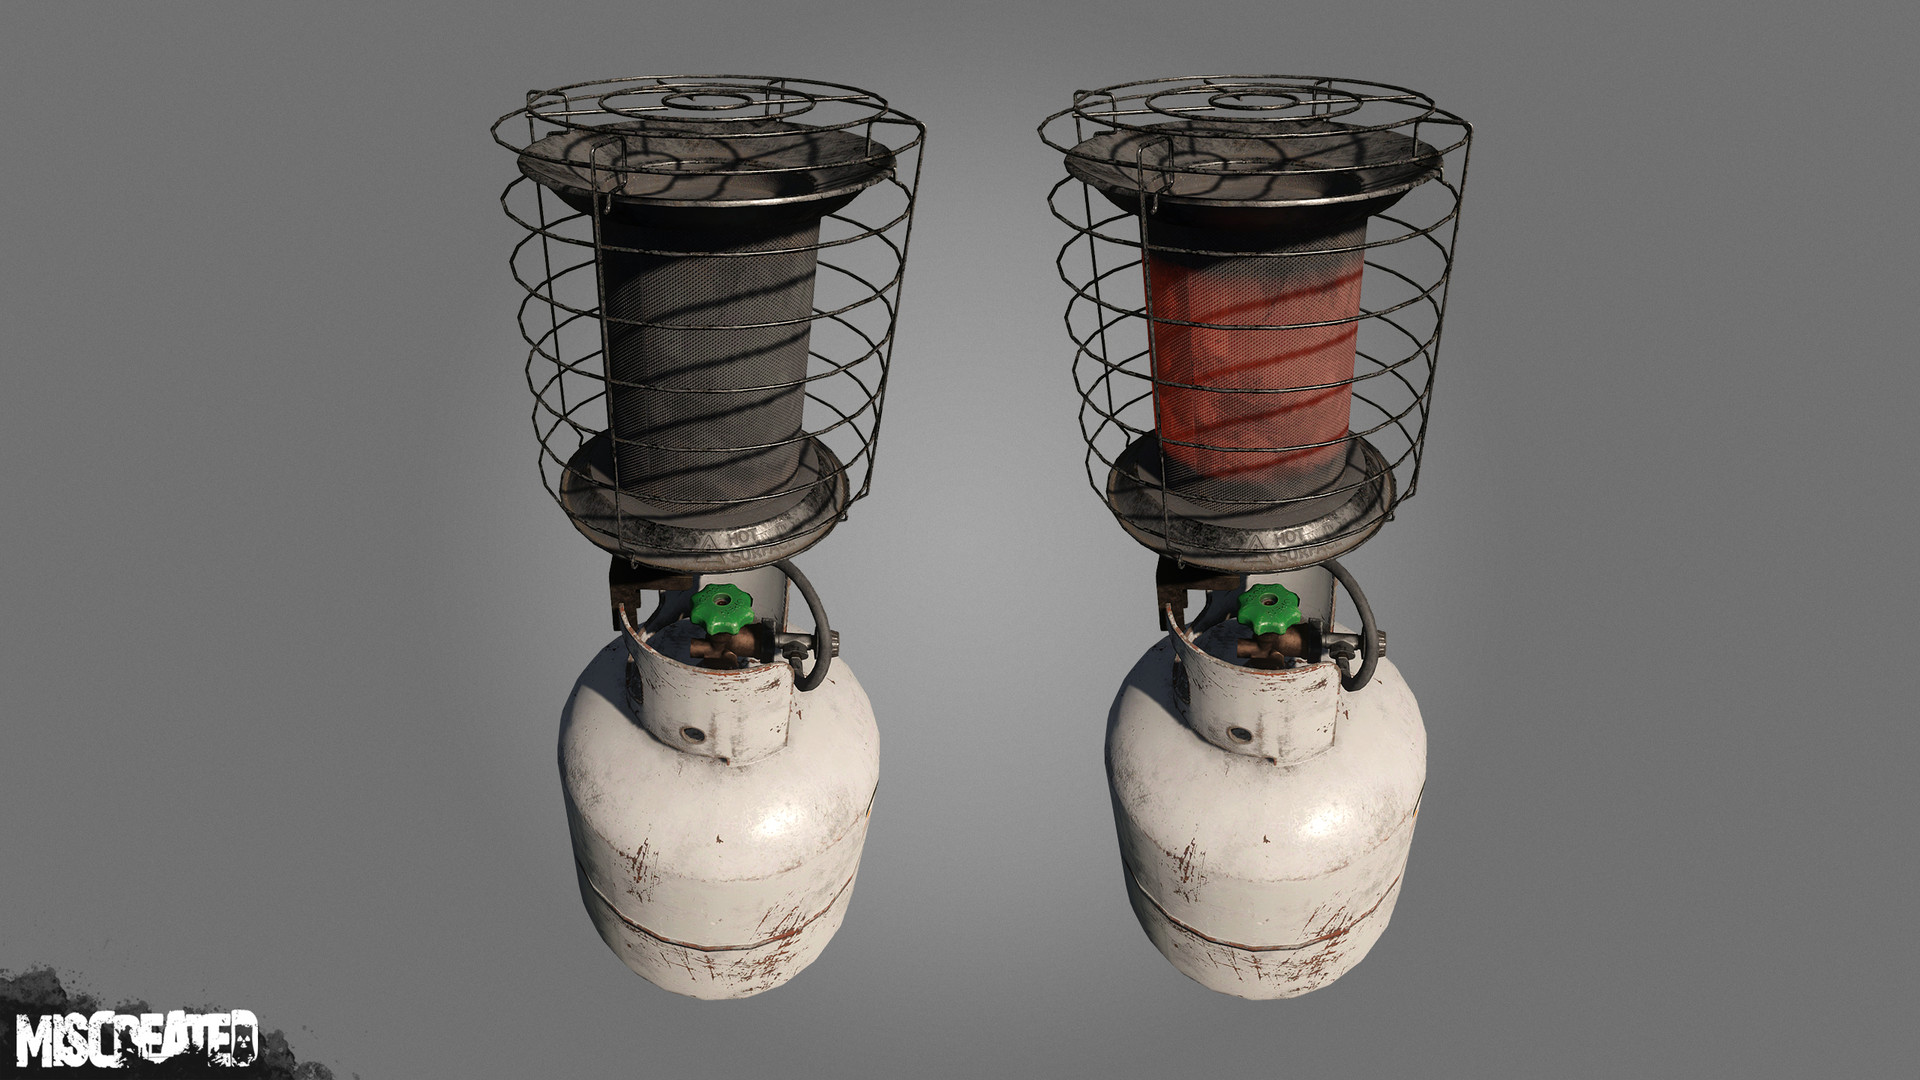 Propane Tanks can be collected and turned into basebuilding items or used as an explosive device.